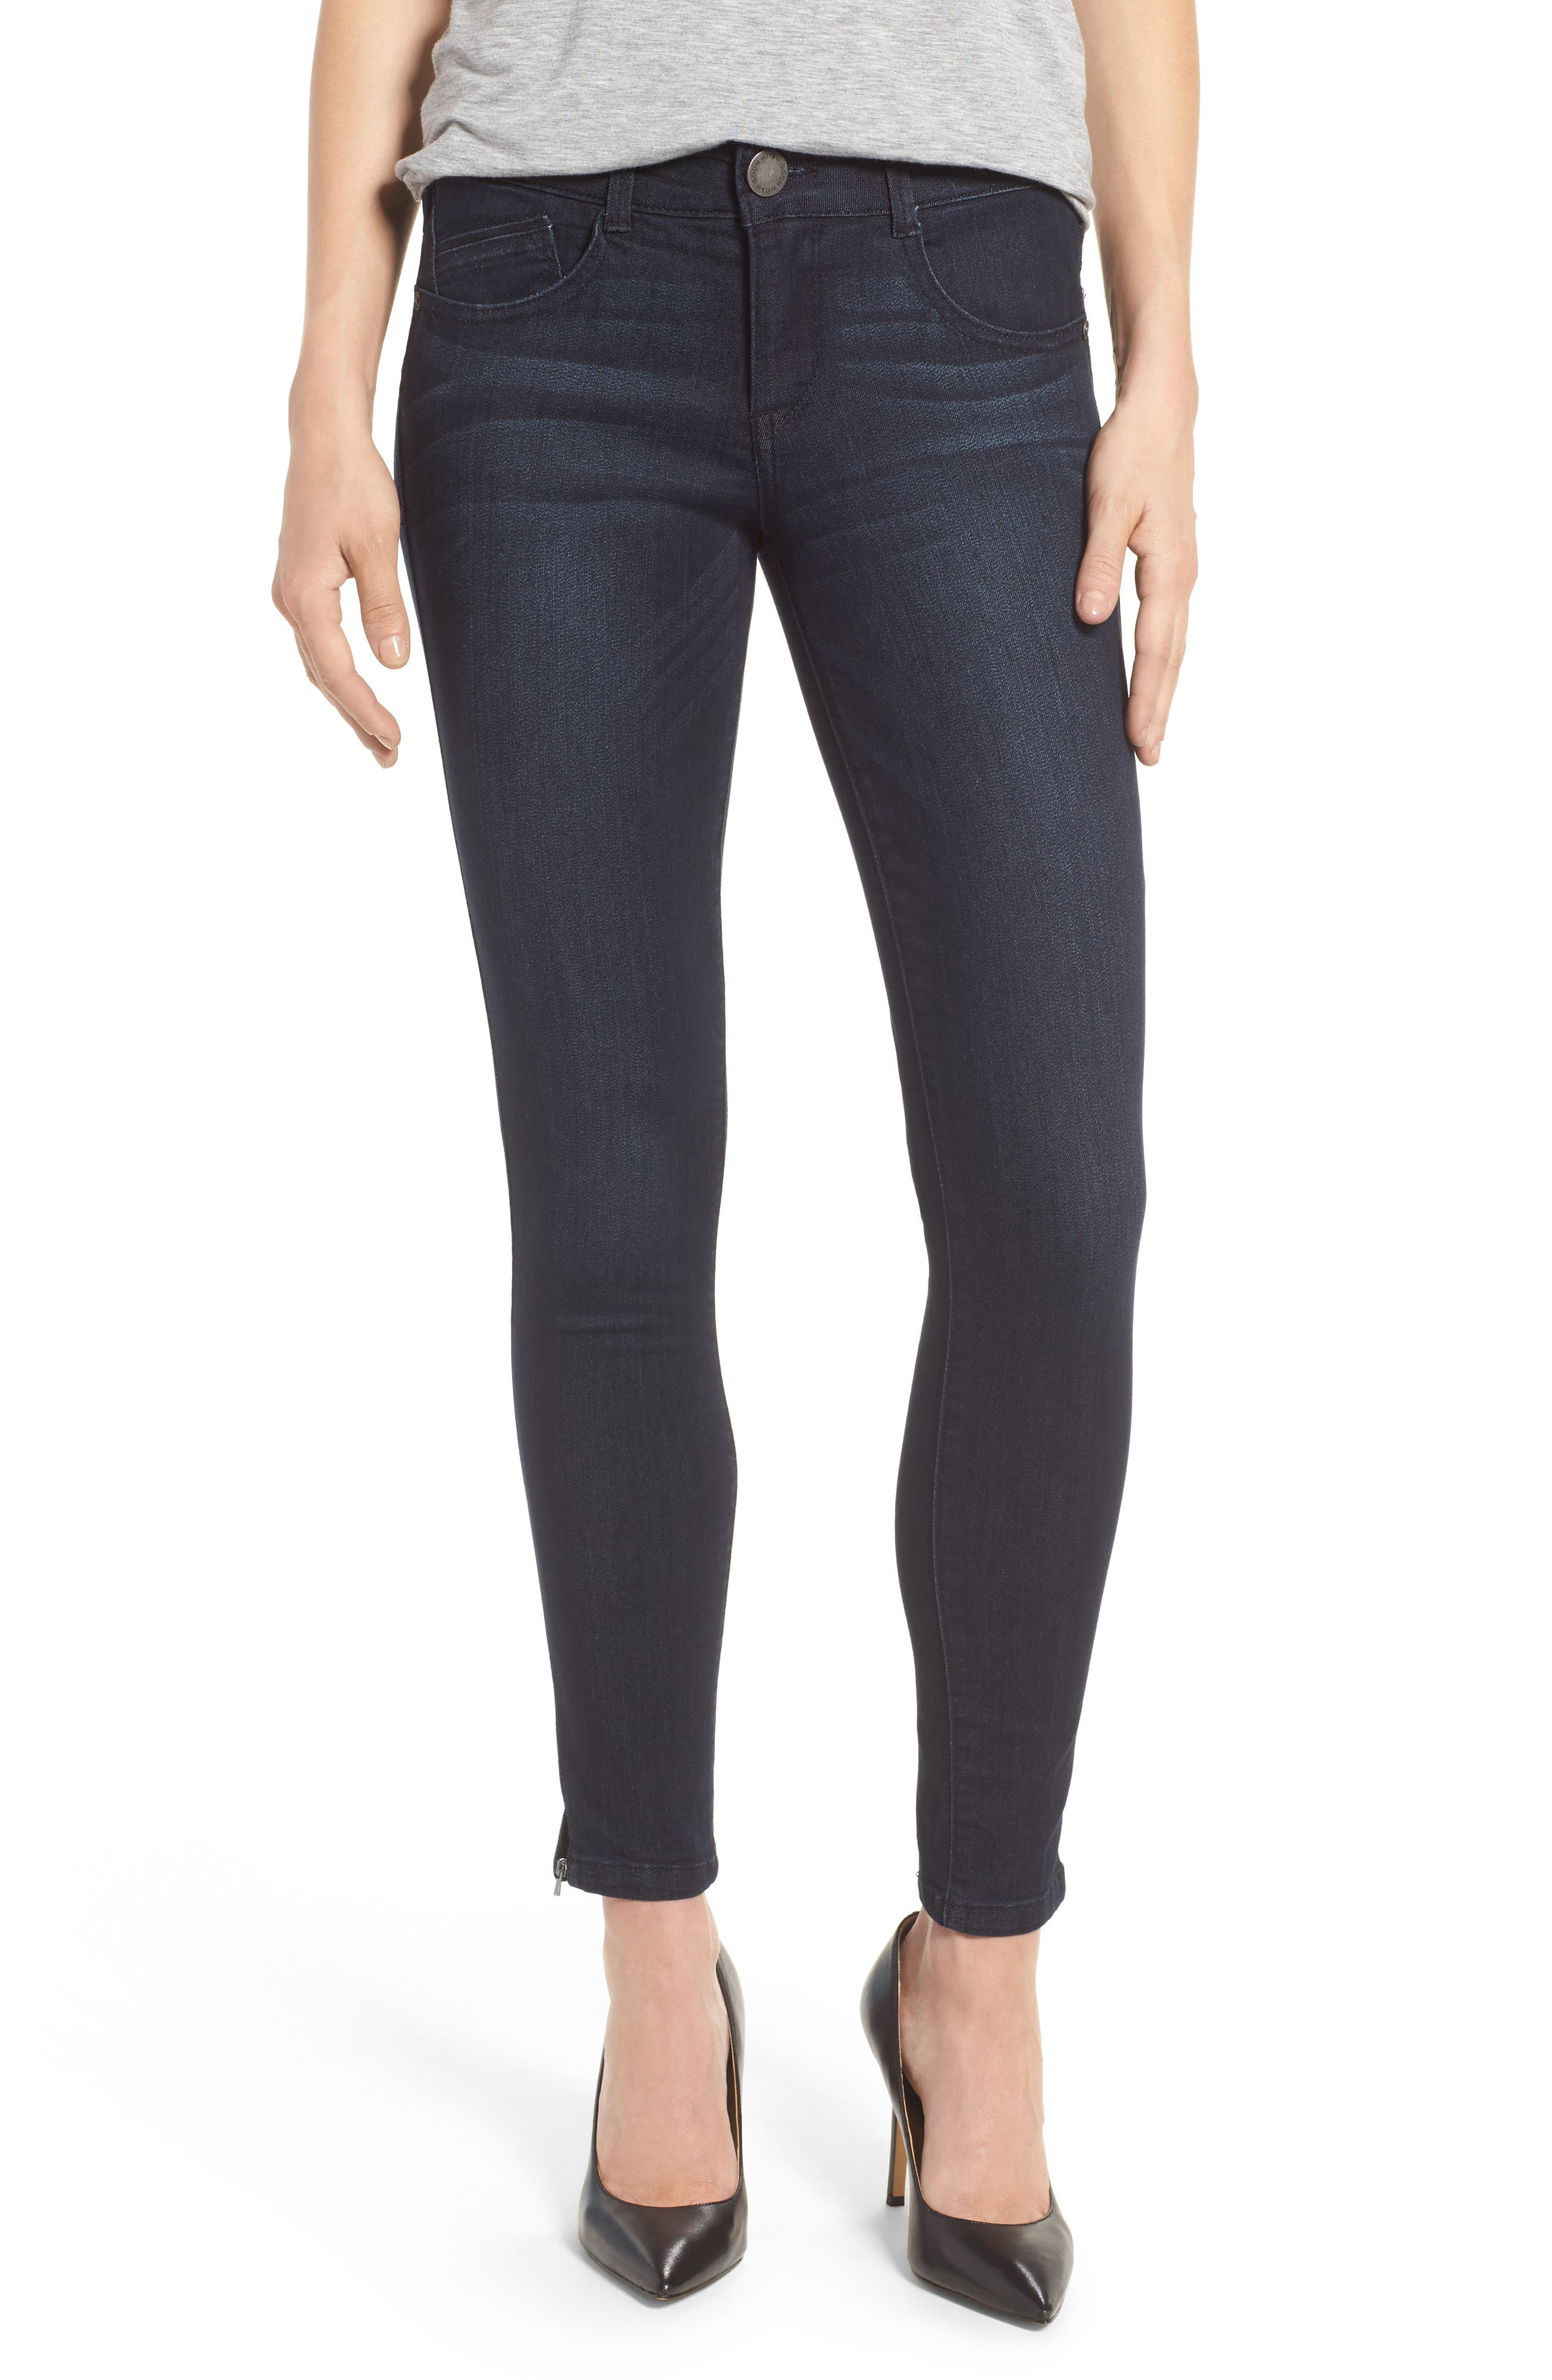 Ab-solution Ankle Zip Skinny Jeans,                         Main,                         color, 410